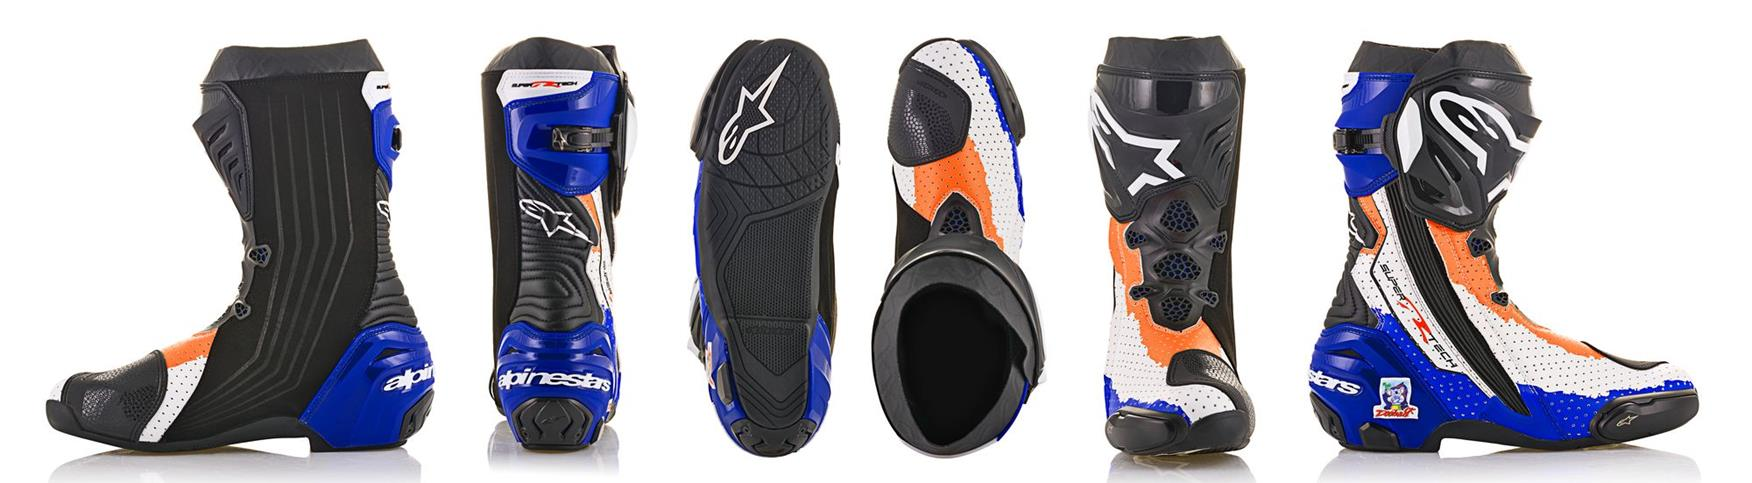 Mick Doohan race replica boots